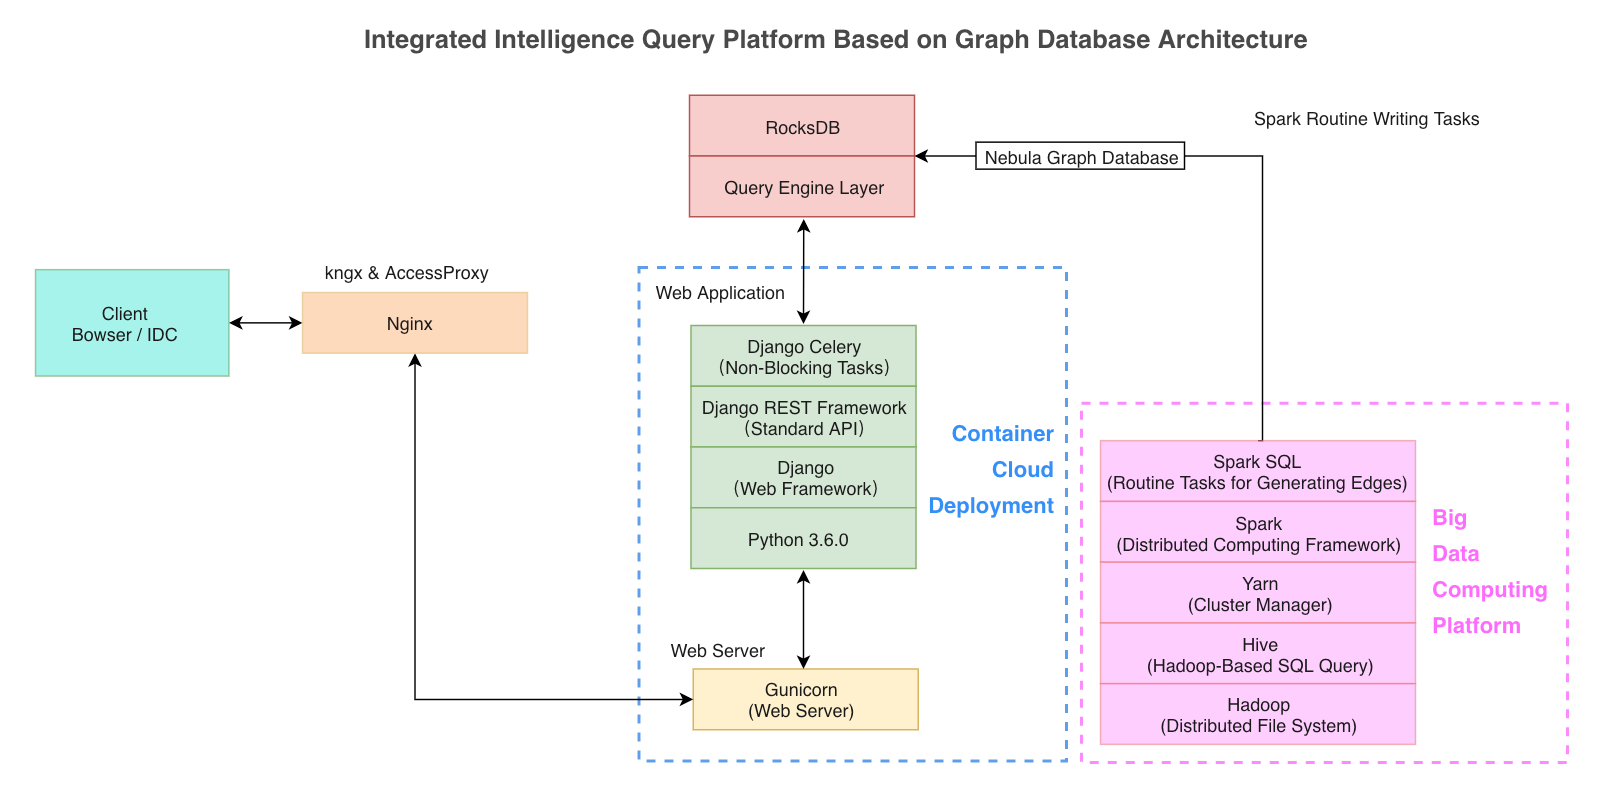 Overall Architecture of Integrated Intelligence Query Platform